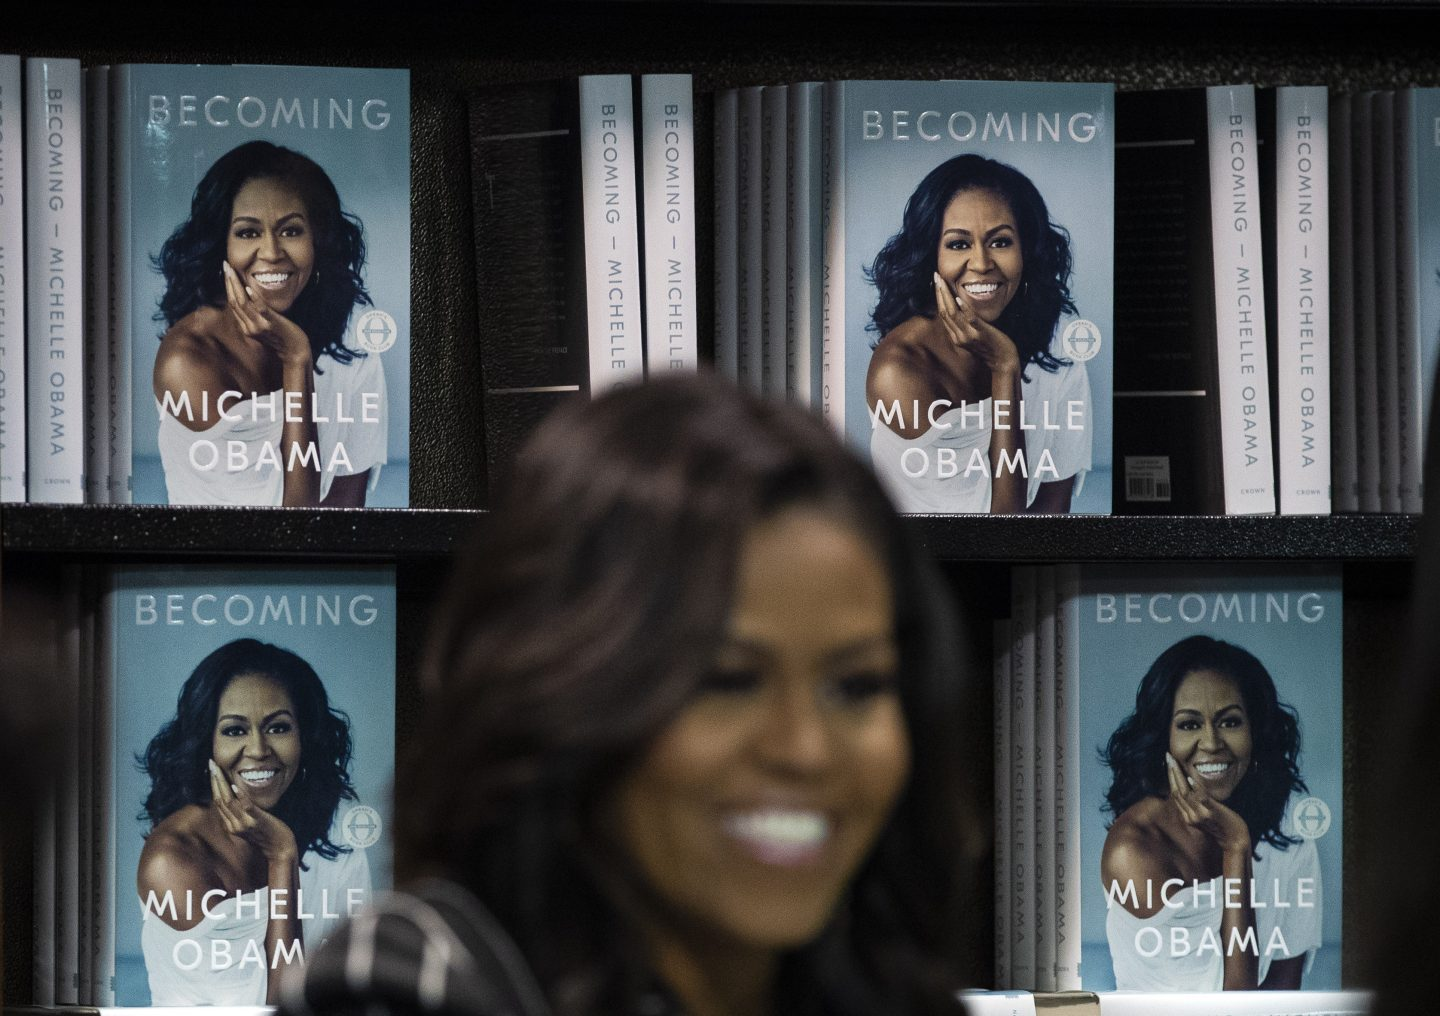 Michelle Obama standing in front of a wall of her books smiling. diversity, gender eguality, empowerment, women, GamePlan A, Reebok